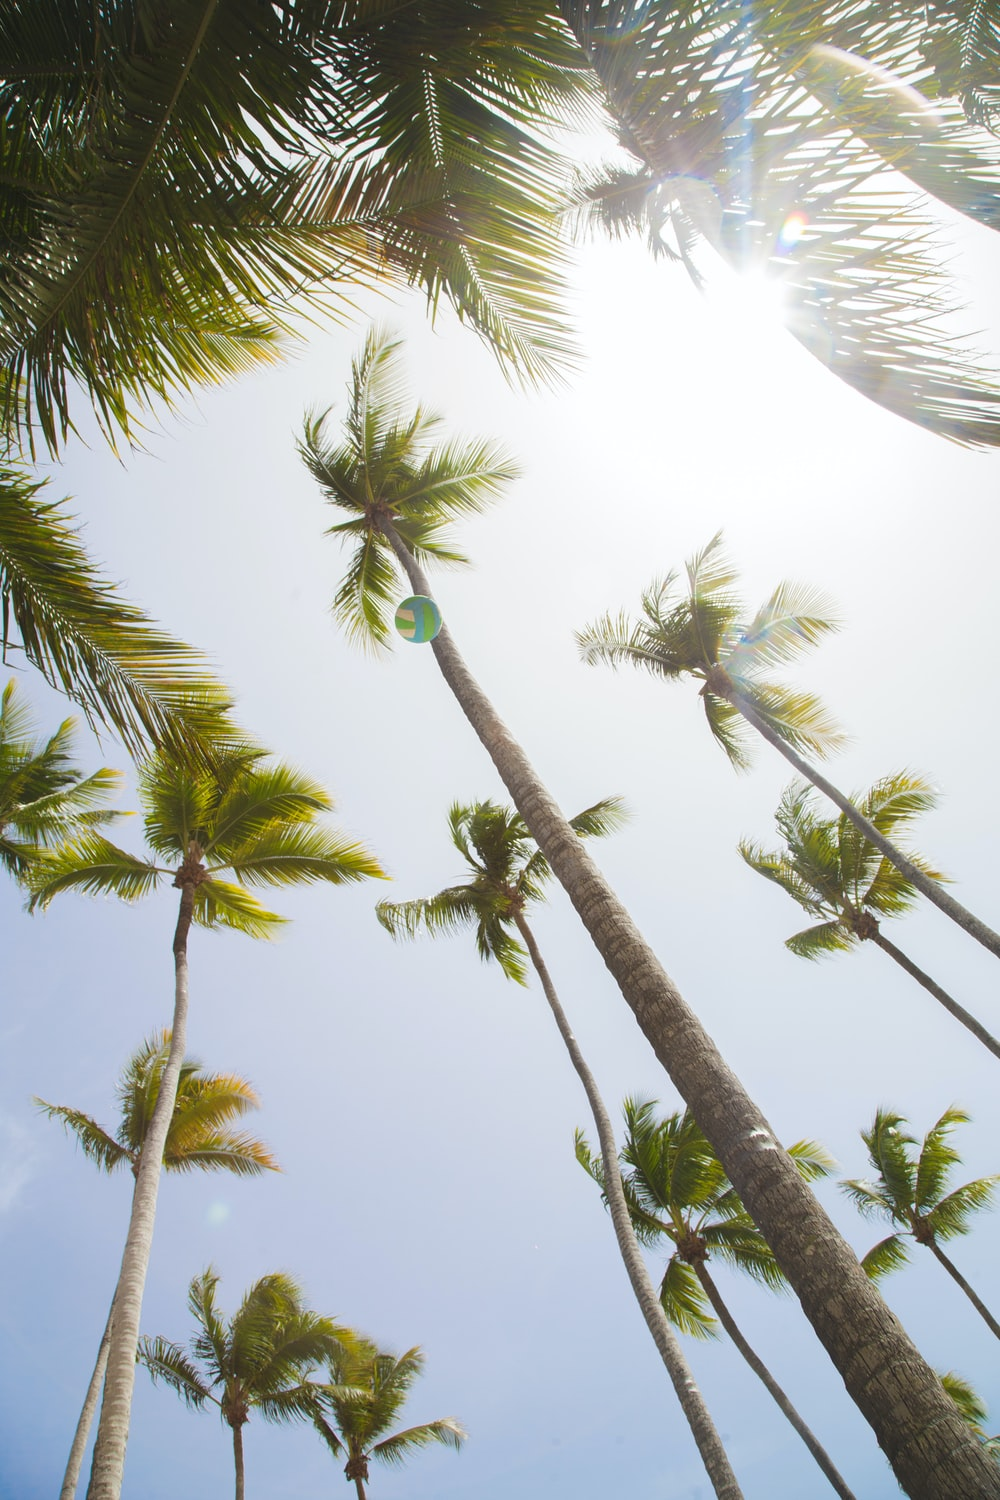 low angle coconut trees